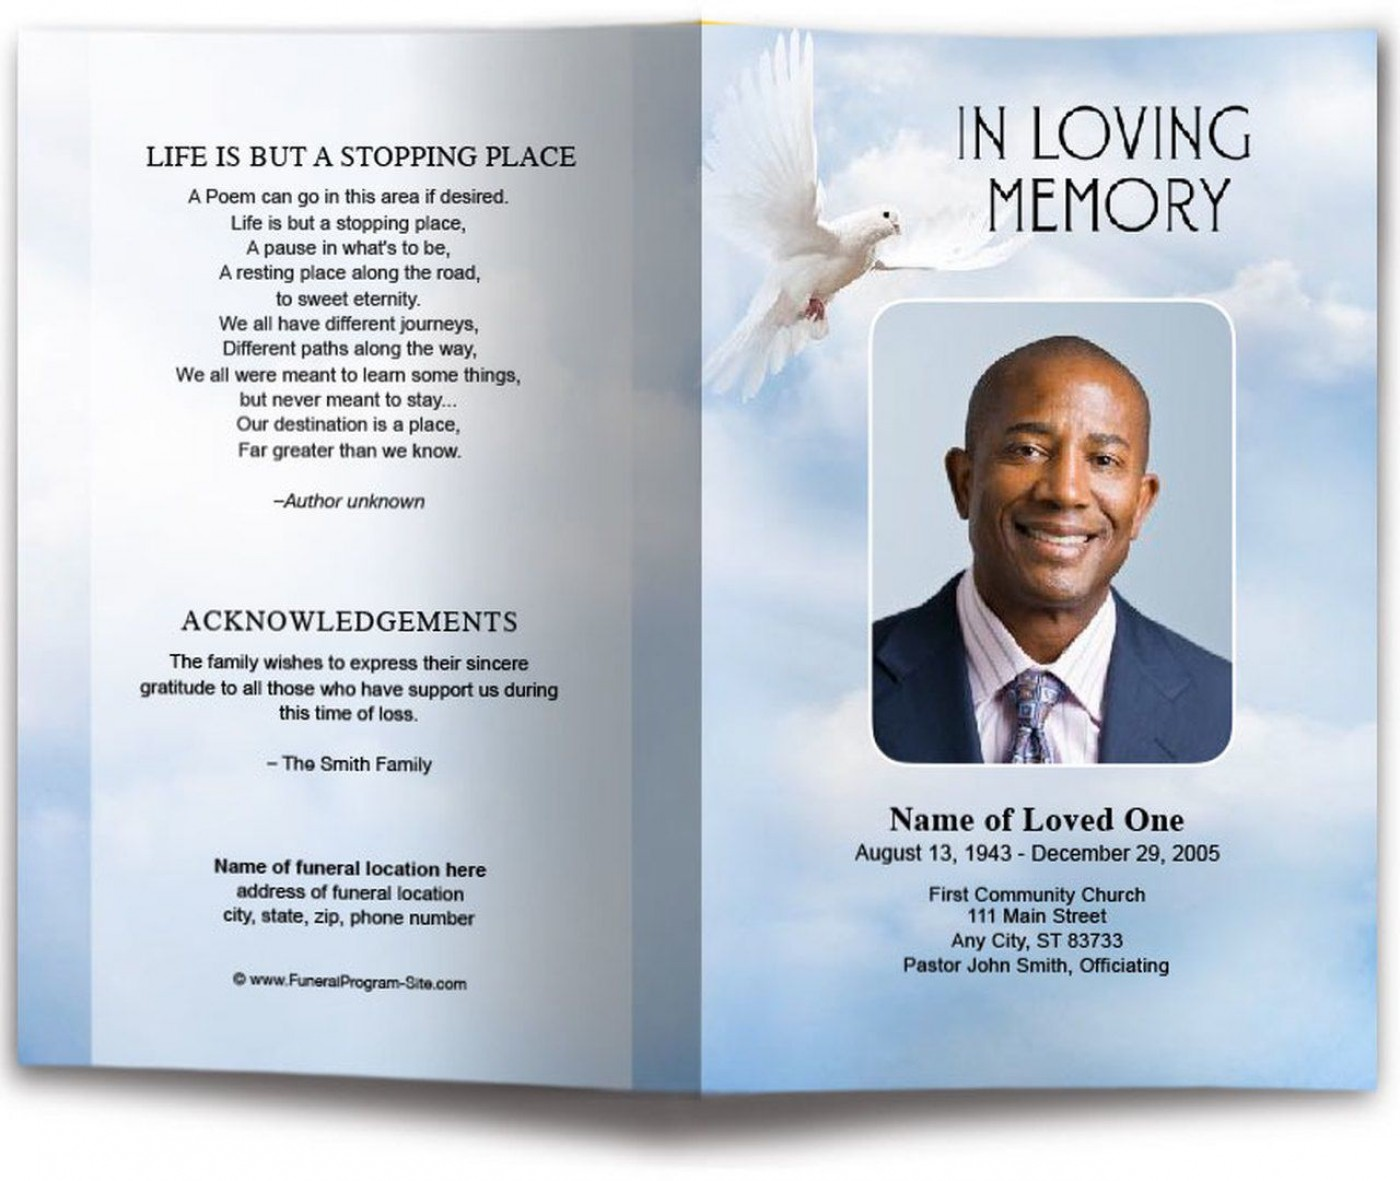 010 Incredible Funeral Program Template Free High Def  Printable Design1400